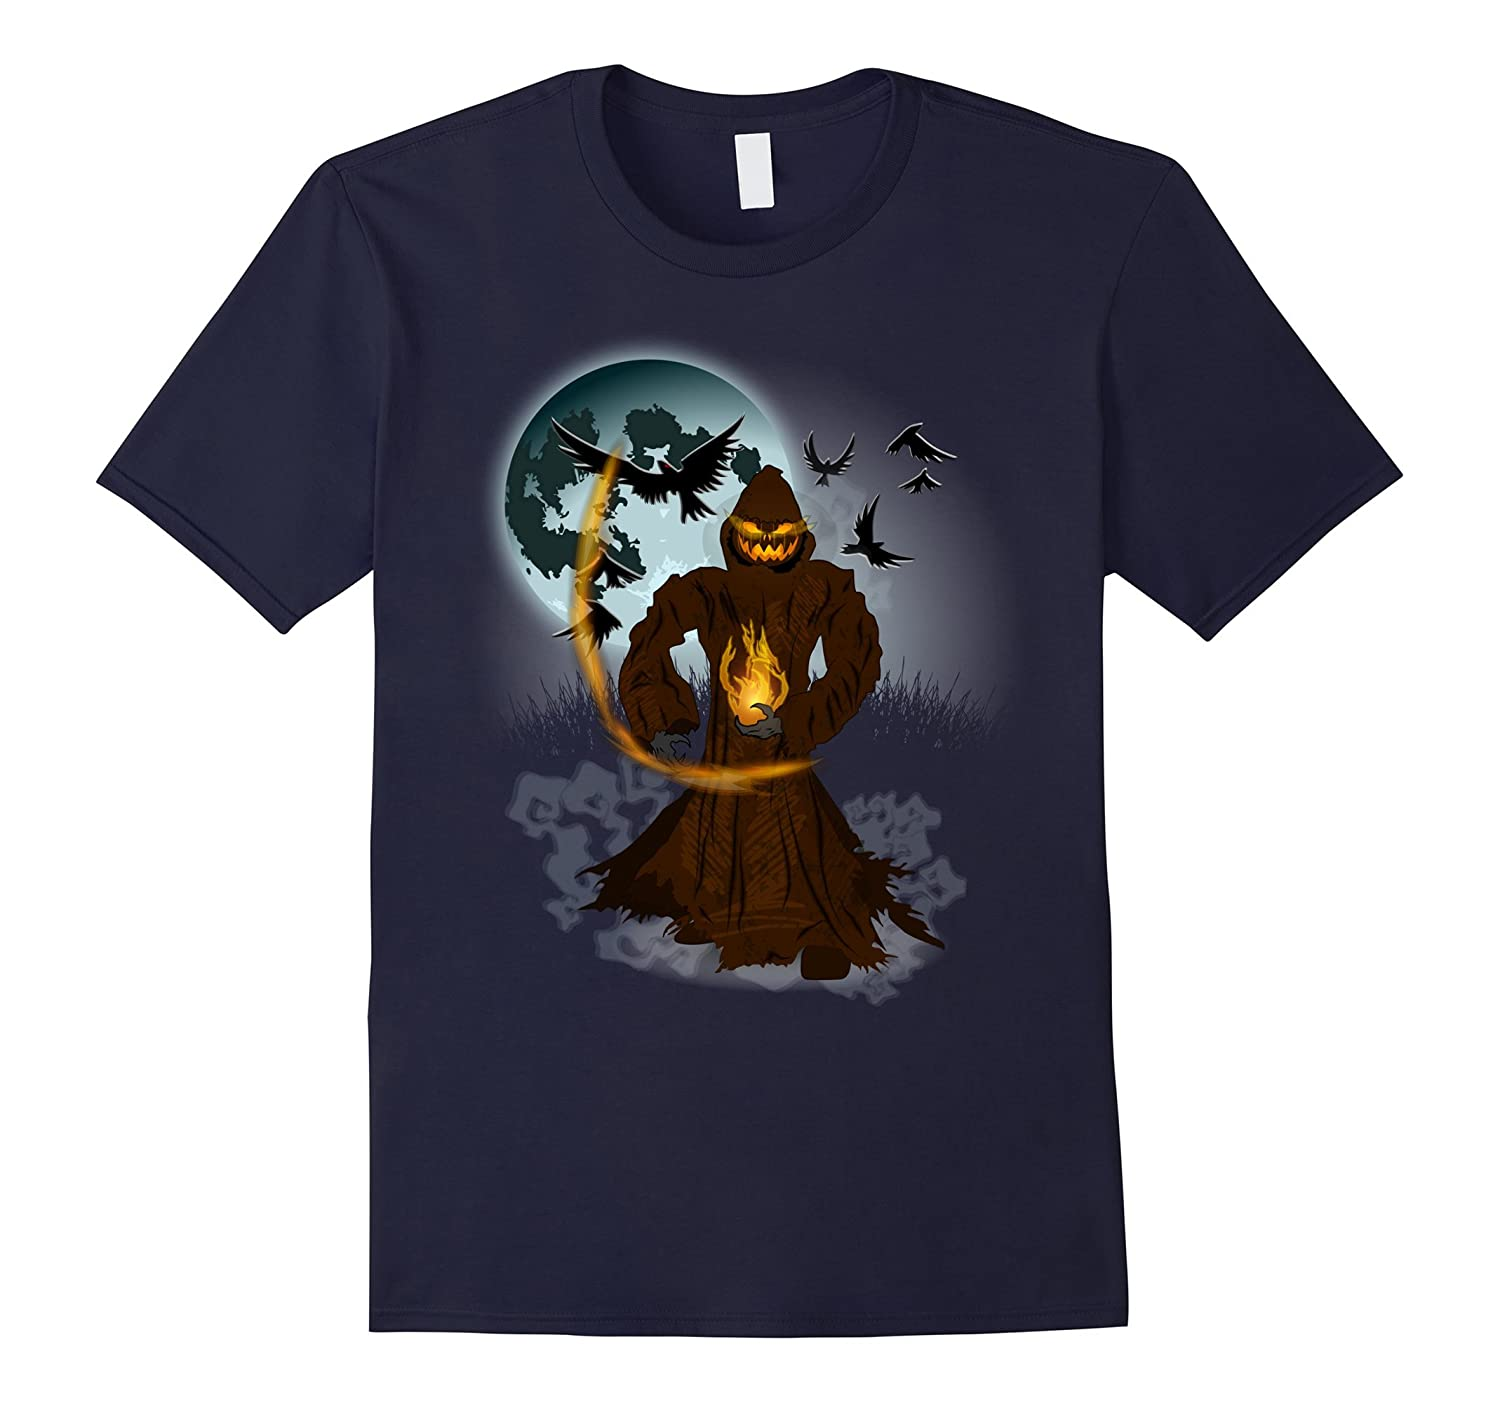 Halloween Pumpkin Jack o Lantern Full Moon and Crows Shirt-TJ